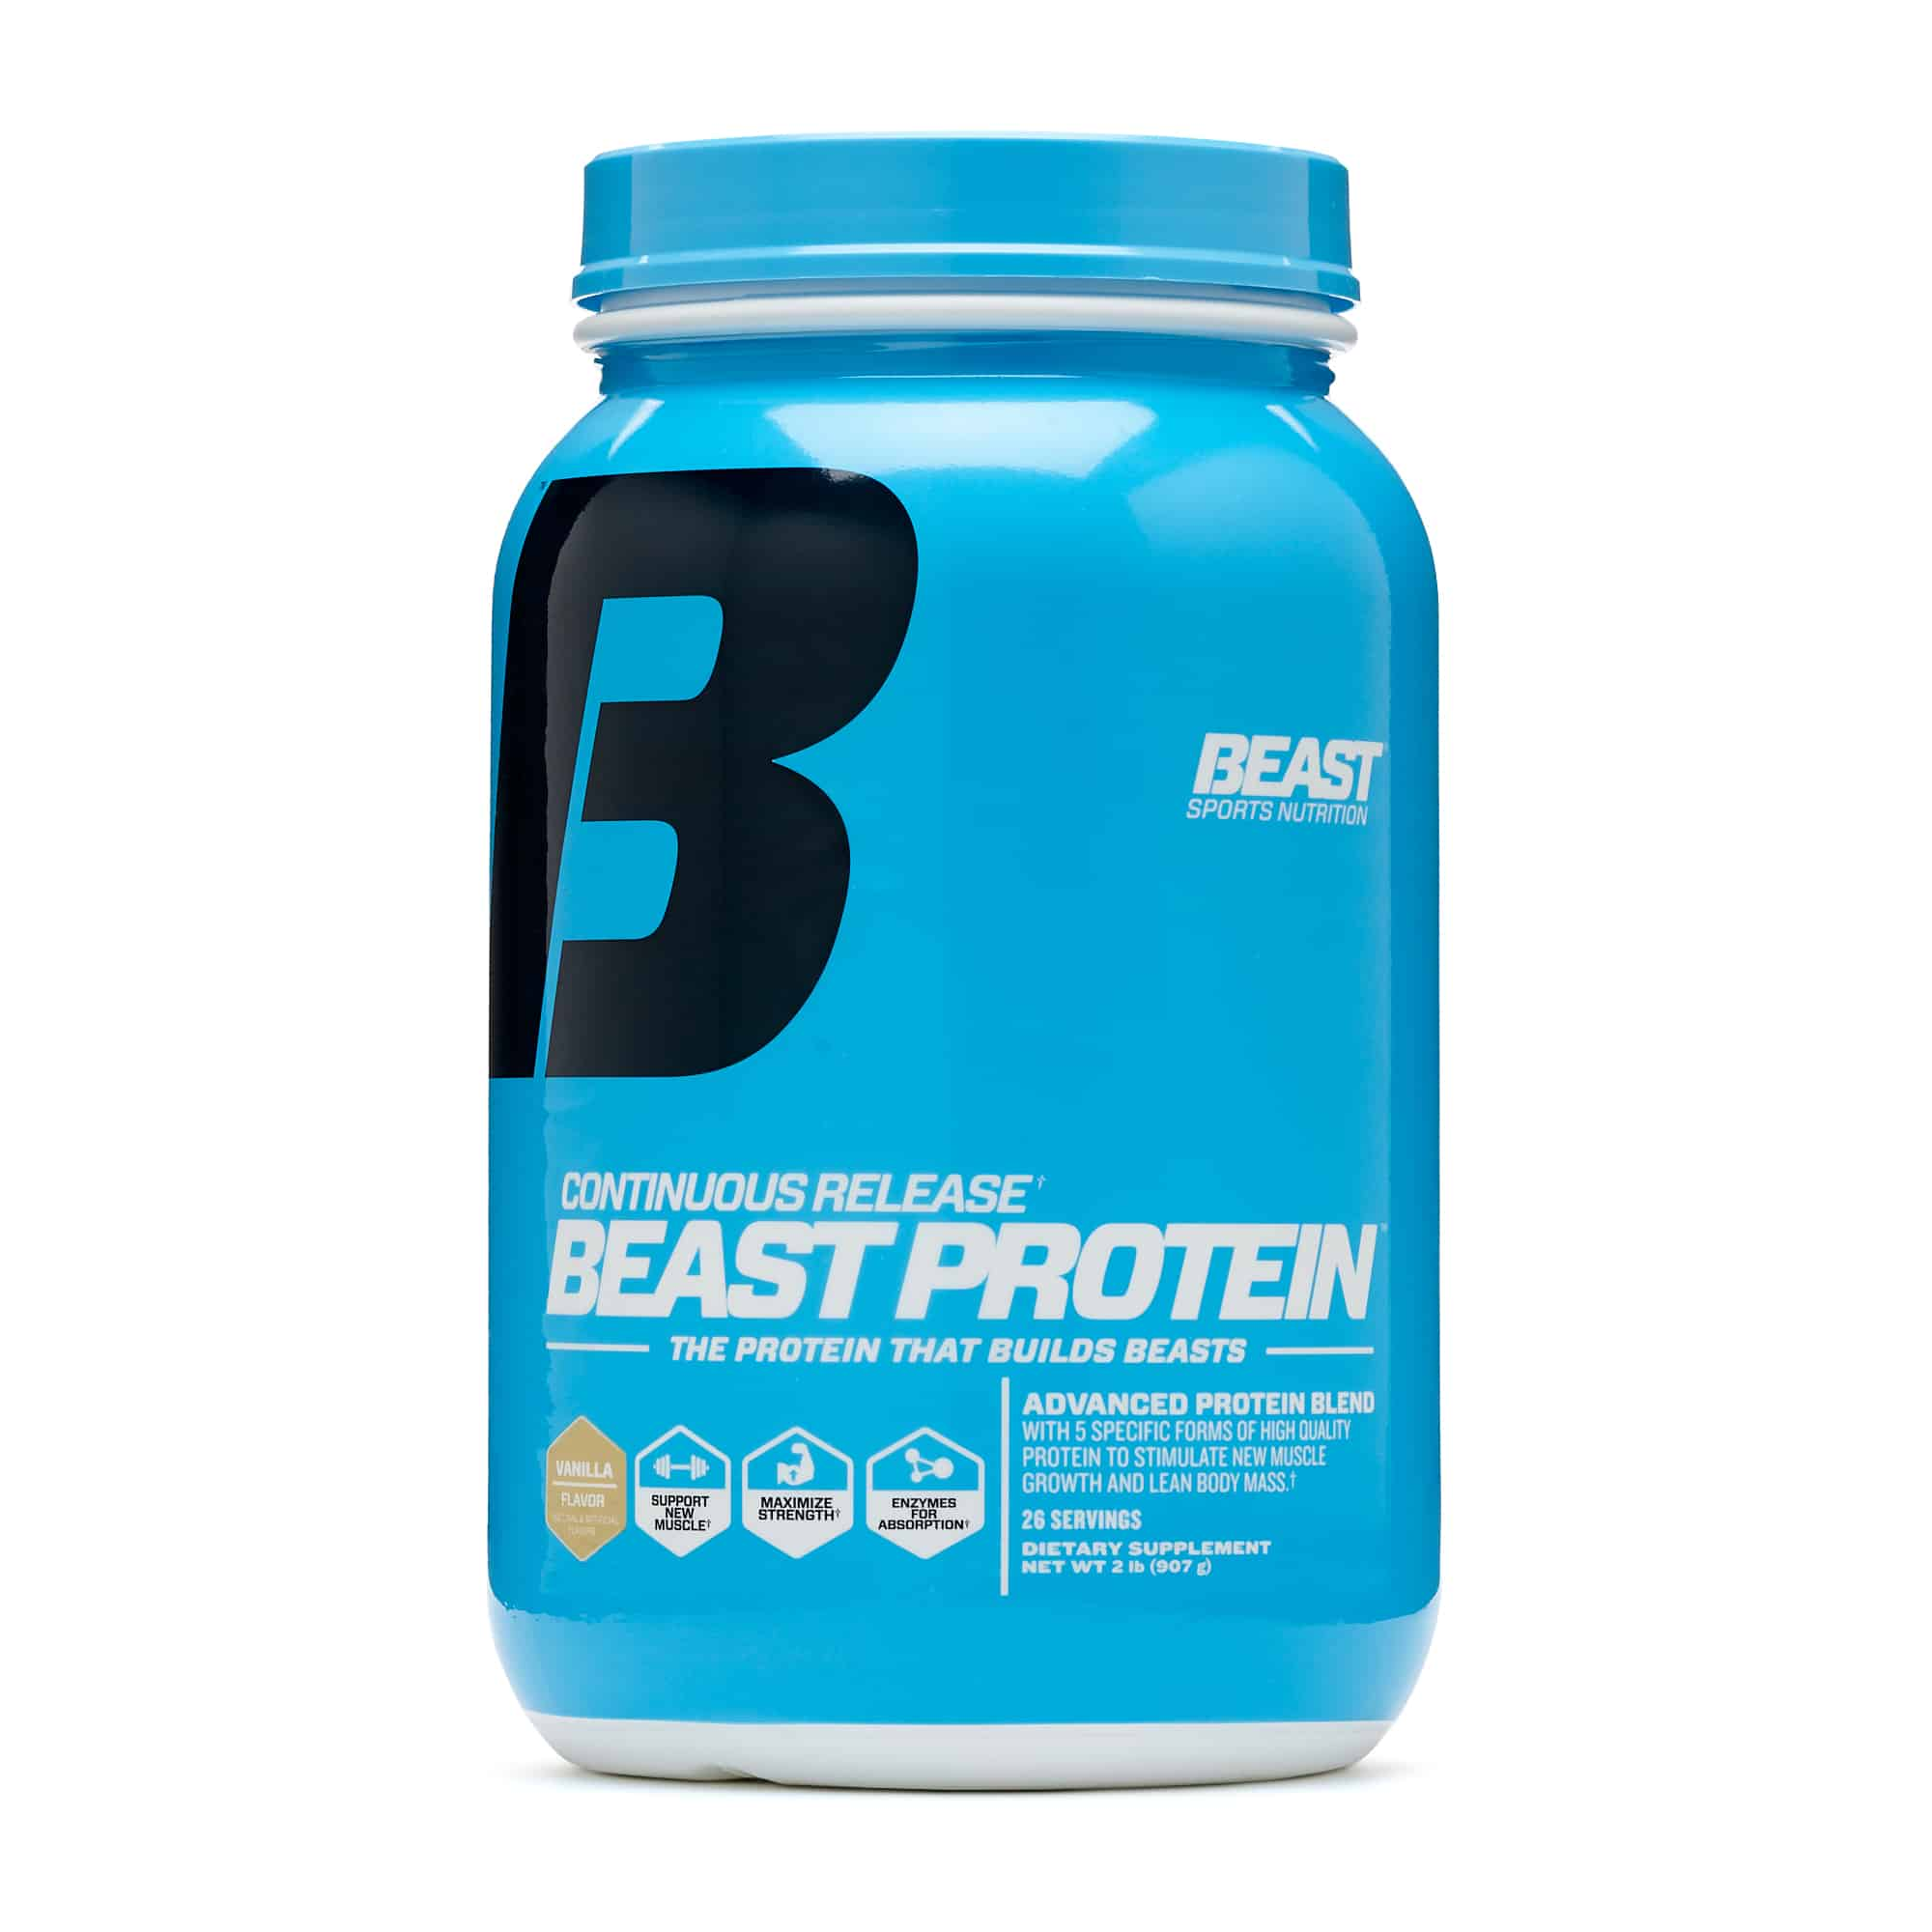 Beast Protein Review – Is This Whey Powder Good for You?